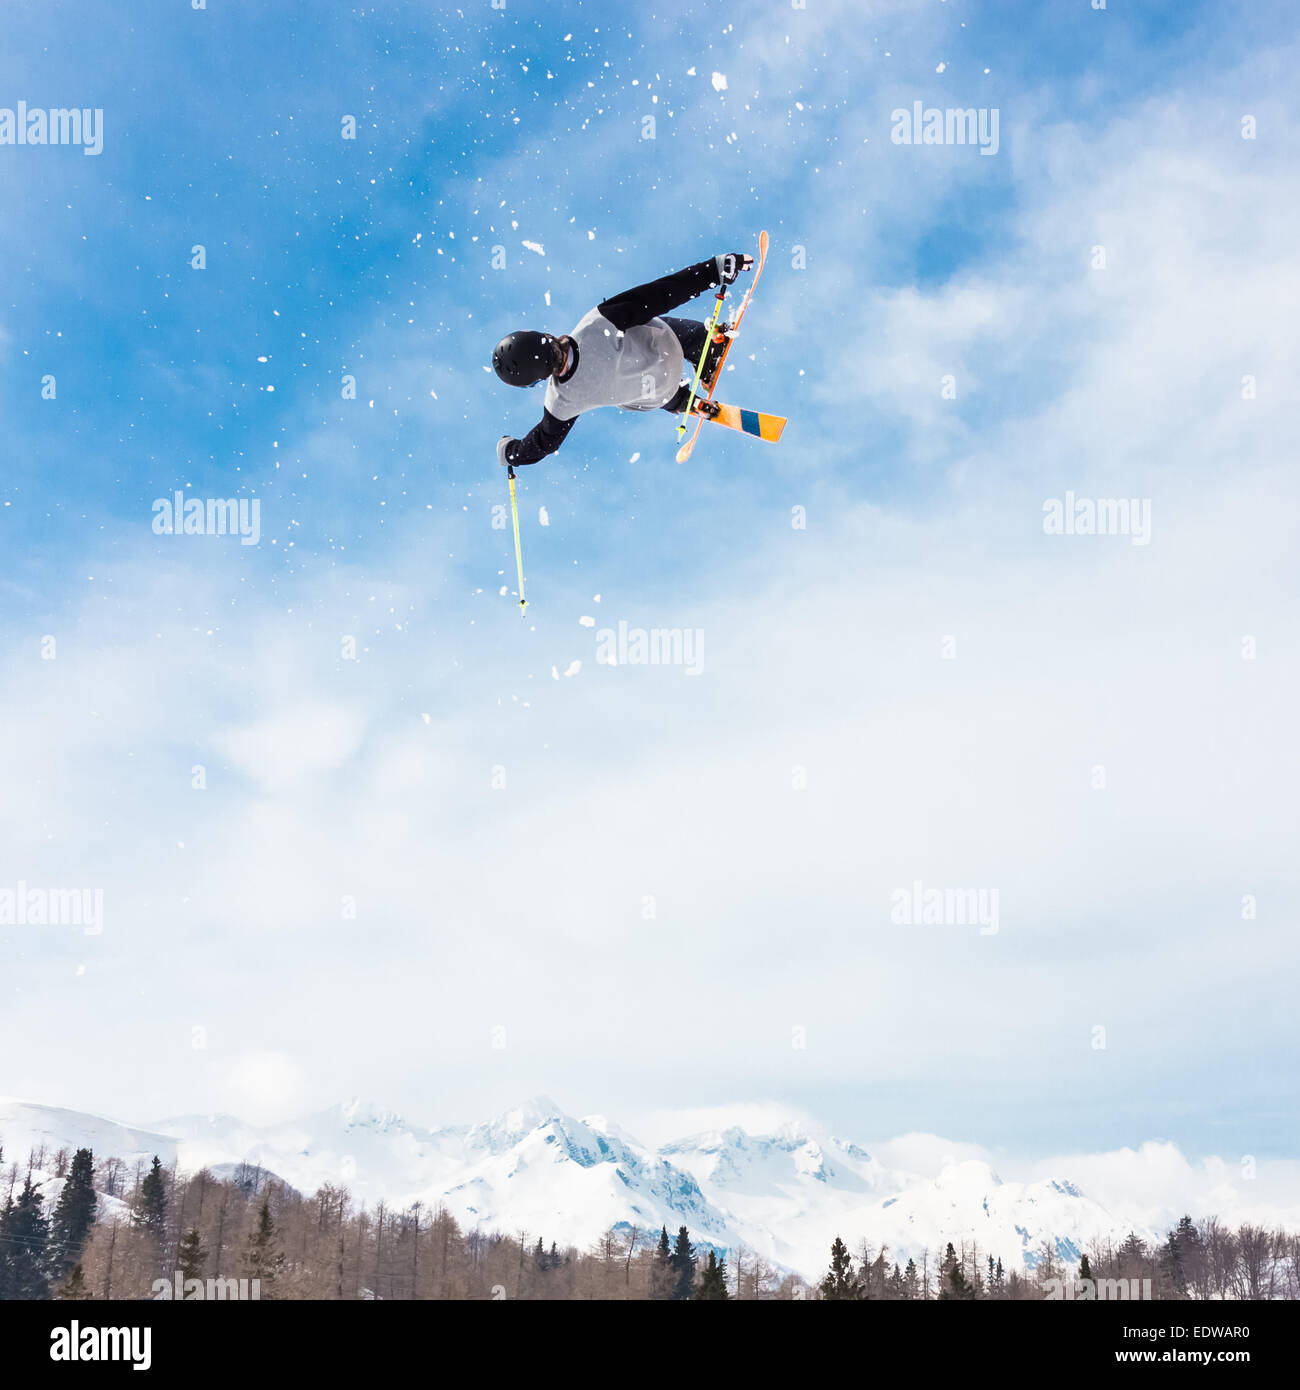 Style libre de skieur. Photo Stock